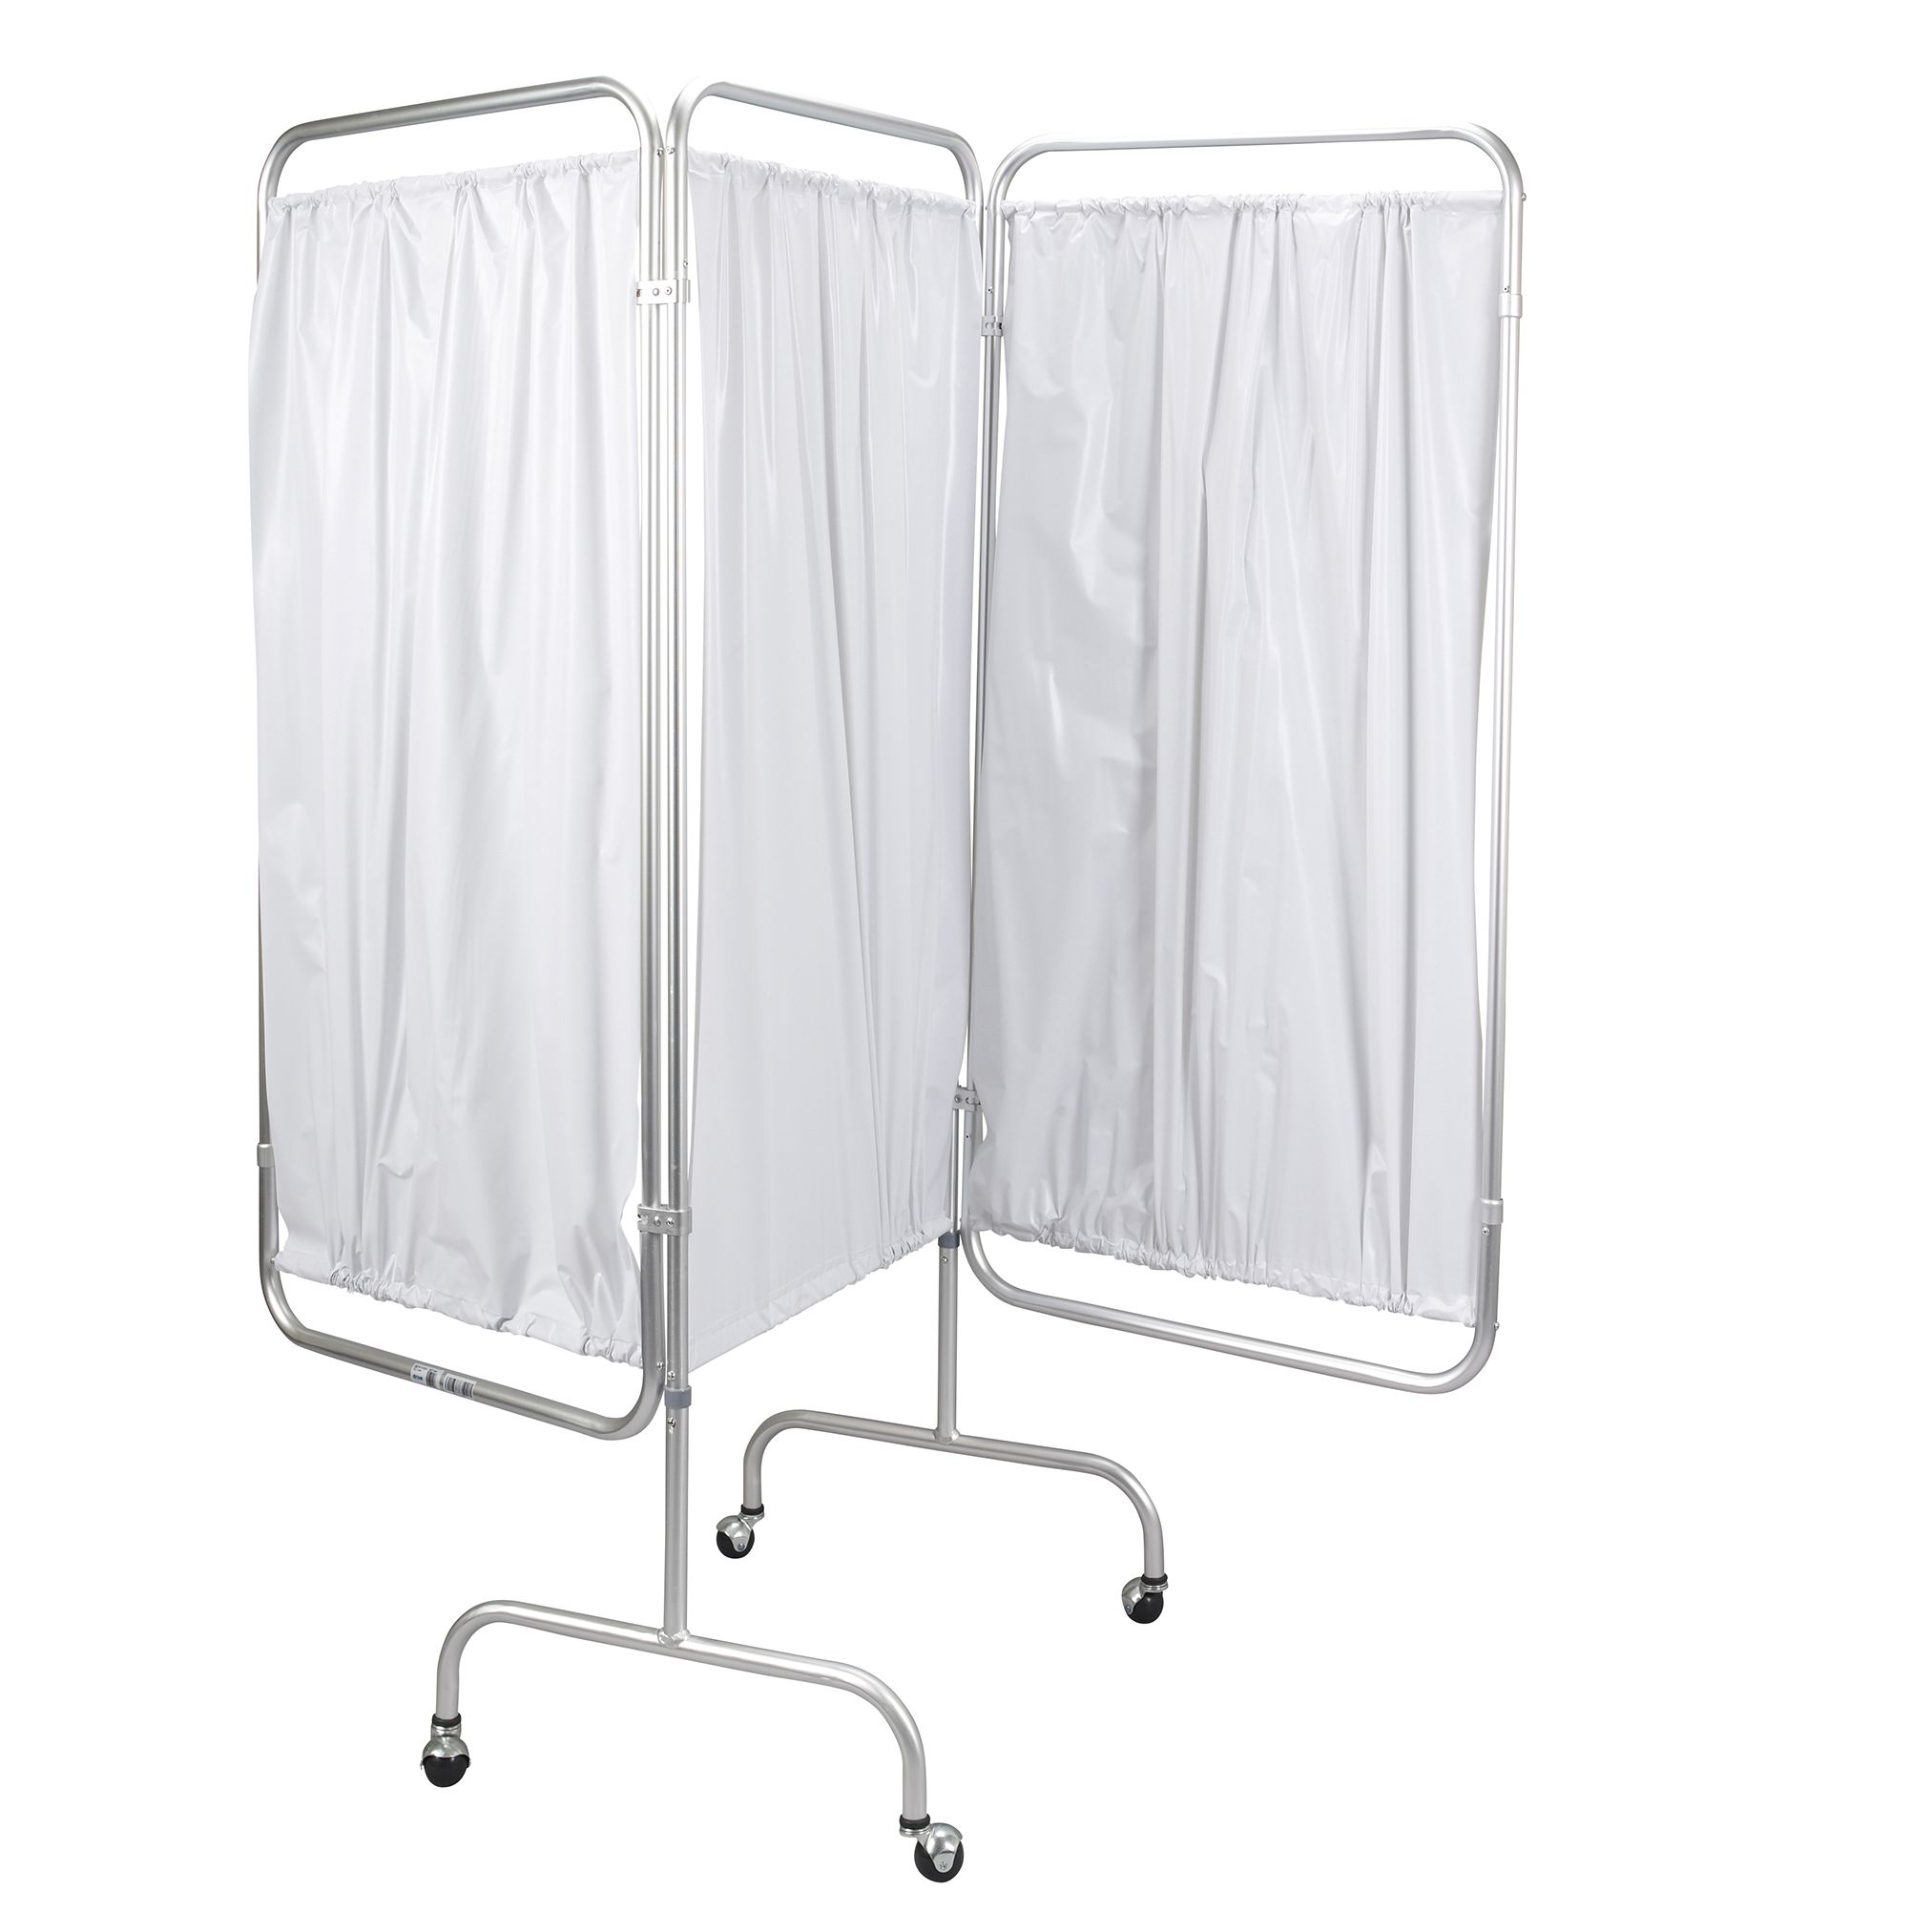 Privacy Screen for Medical Office or Patient Room Folding